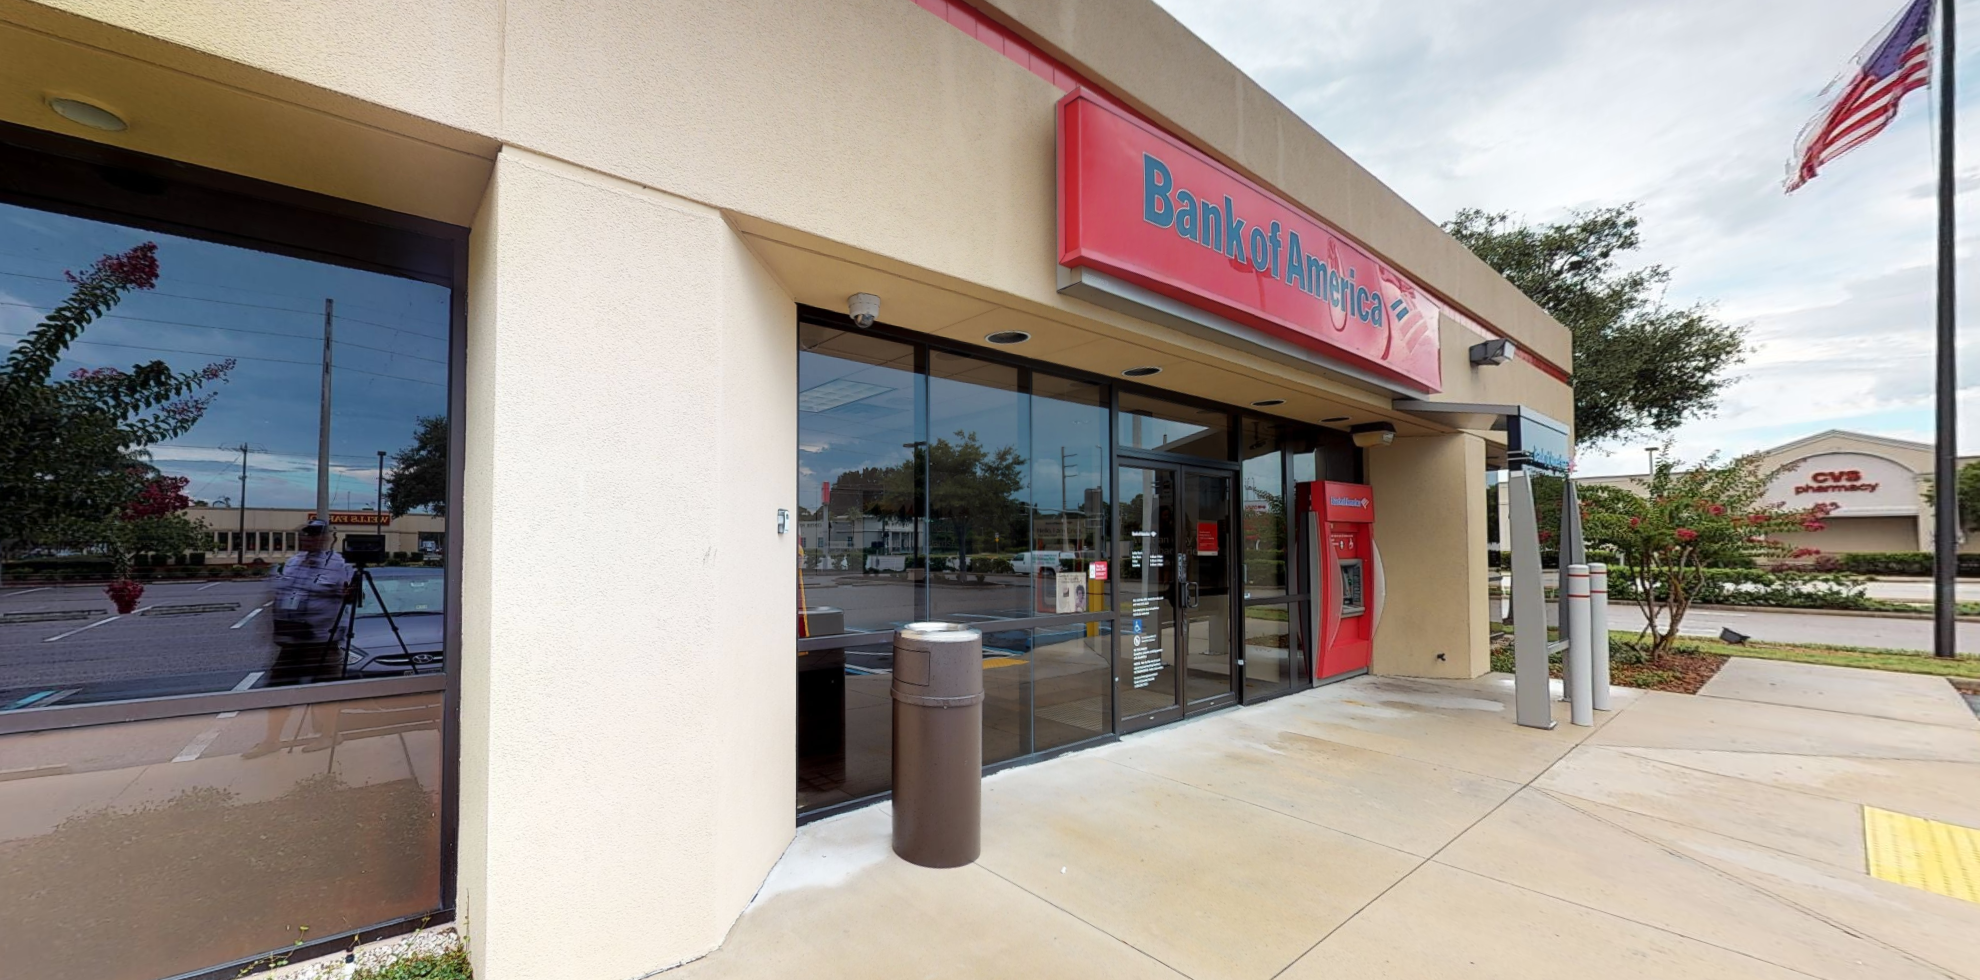 Bank of America financial center with drive-thru ATM | 1785 S McCall Rd, Englewood, FL 34223